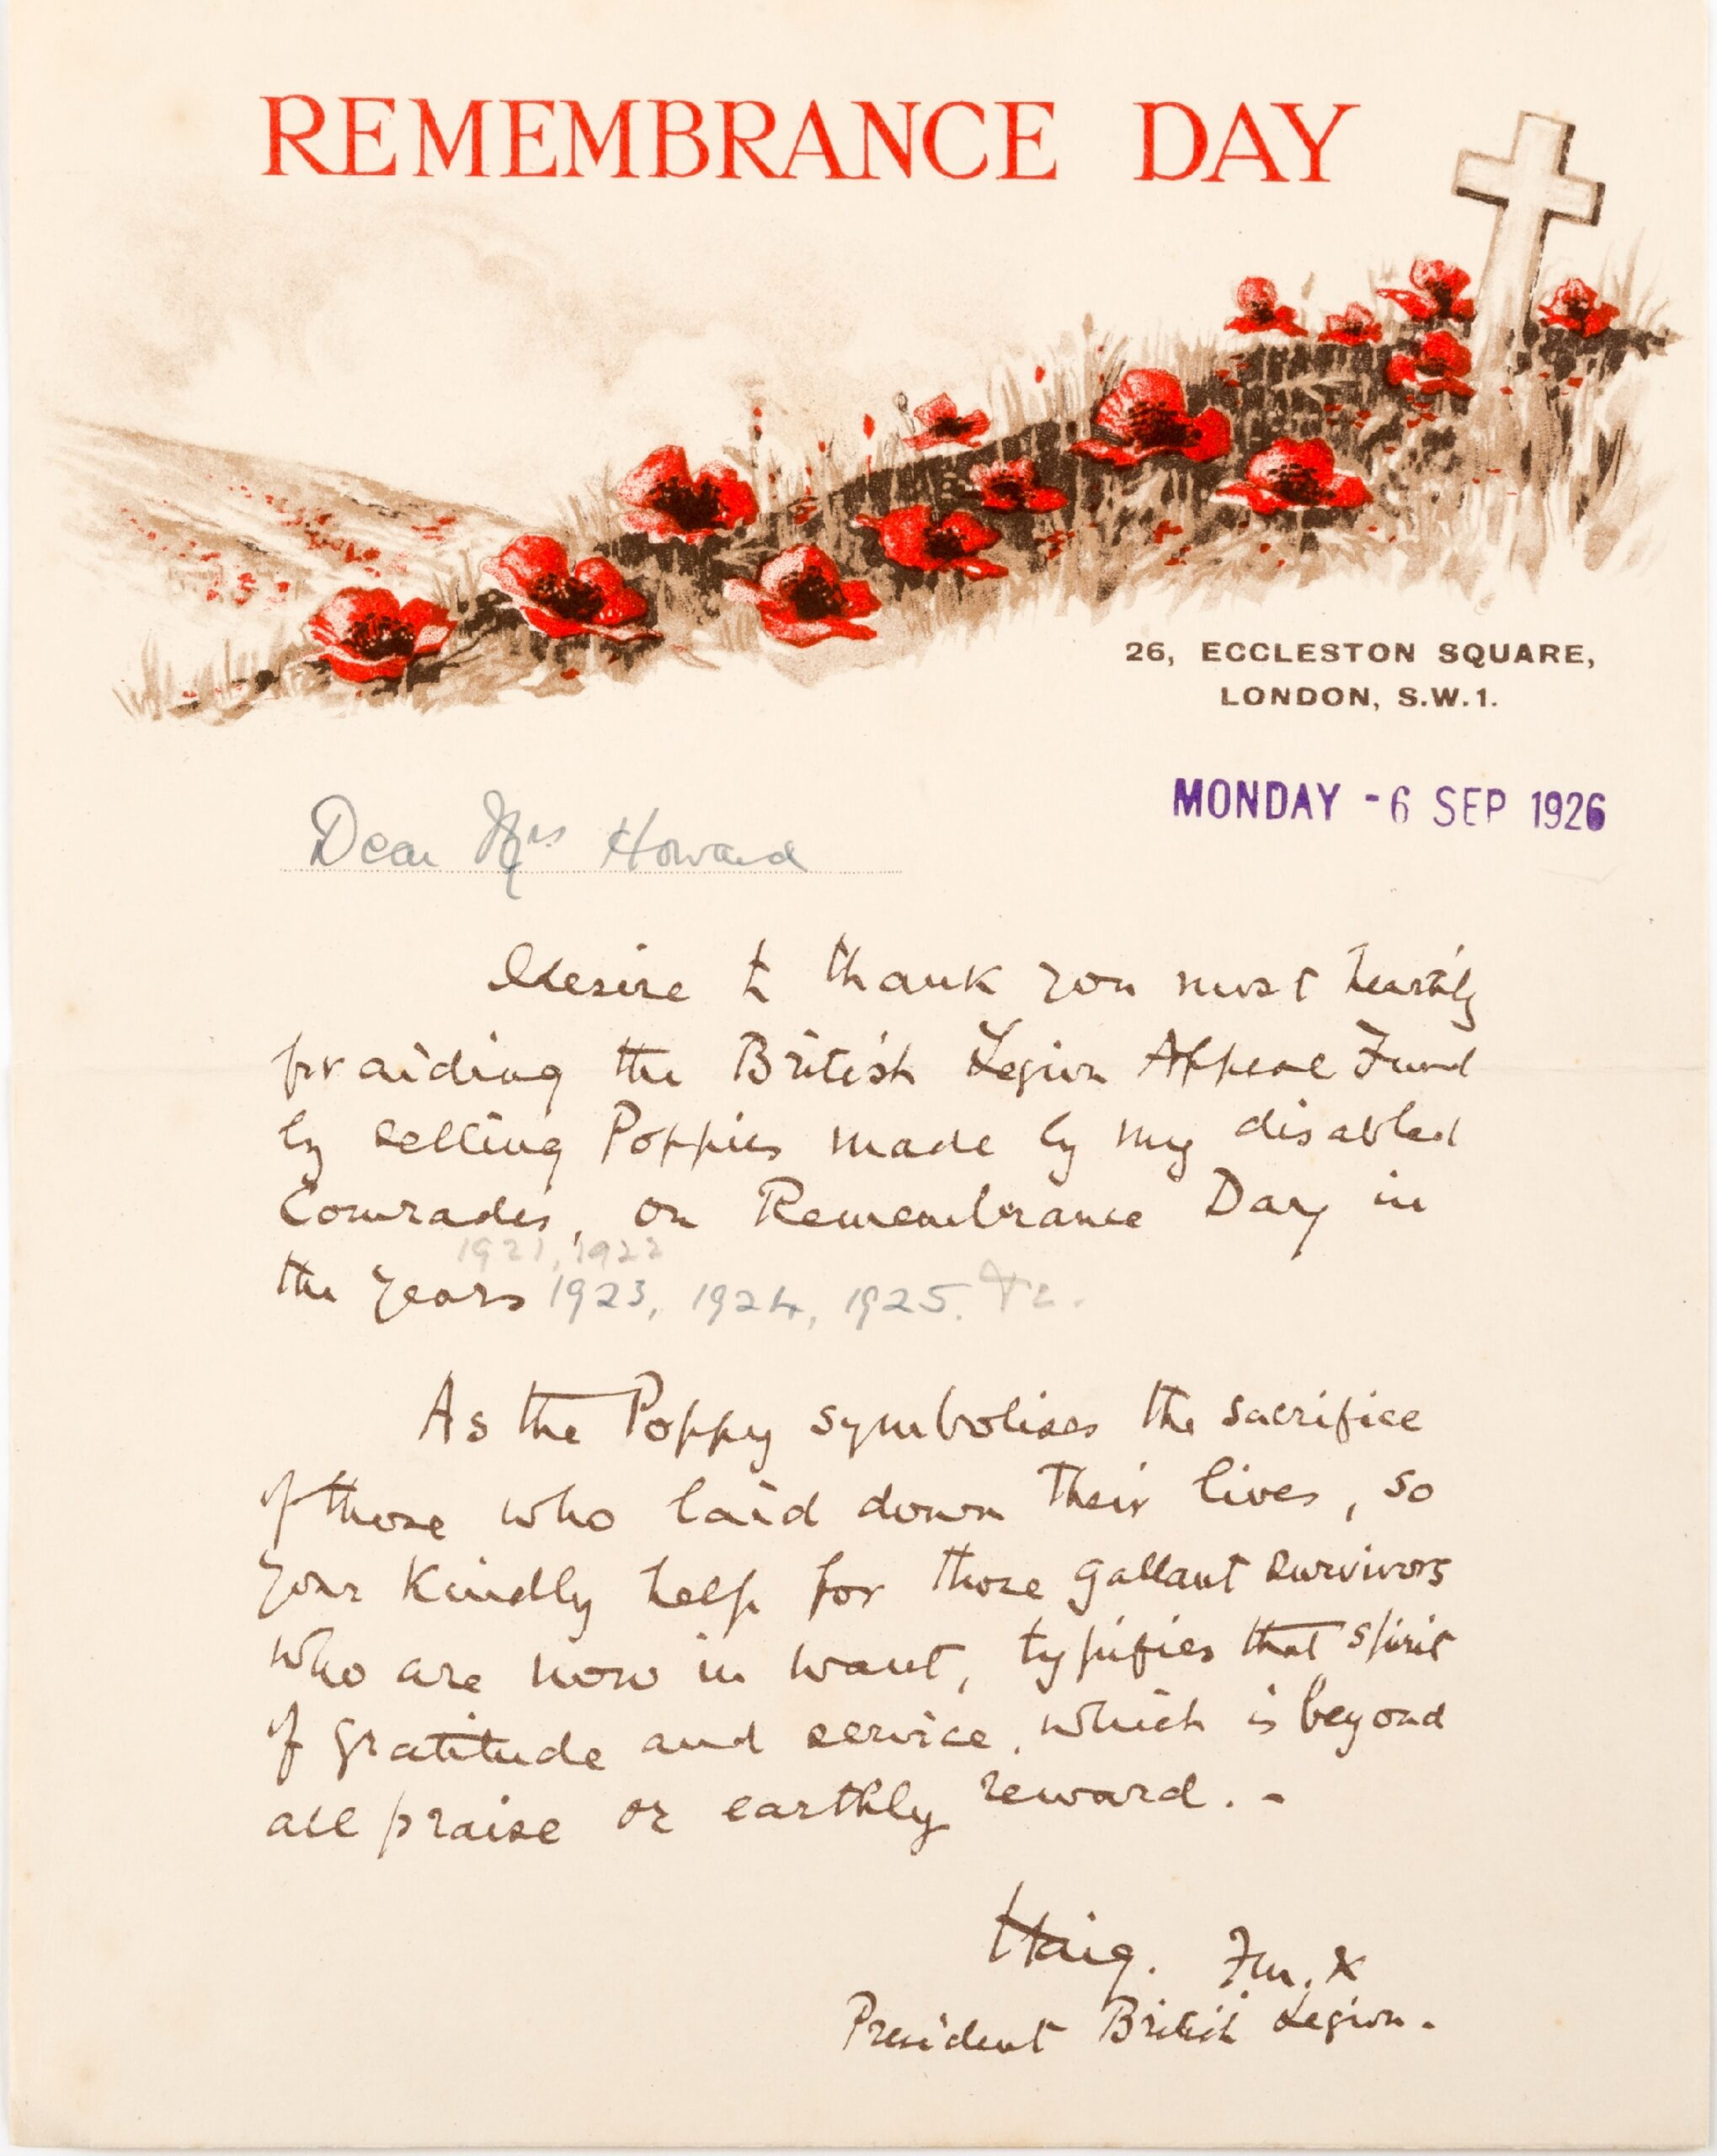 A letter from the President of the British Legion, thanking Walton local Mrs. Howard for selling poppies made by disabled veterans to raise money for the British Legion. It is dated Monday 6th September, 1926.A letter from the President of the British Legion, thanking Walton local Mrs. Howard for selling poppies made by disabled veterans to raise money for the British Legion. It is dated Monday 6th September, 1926.